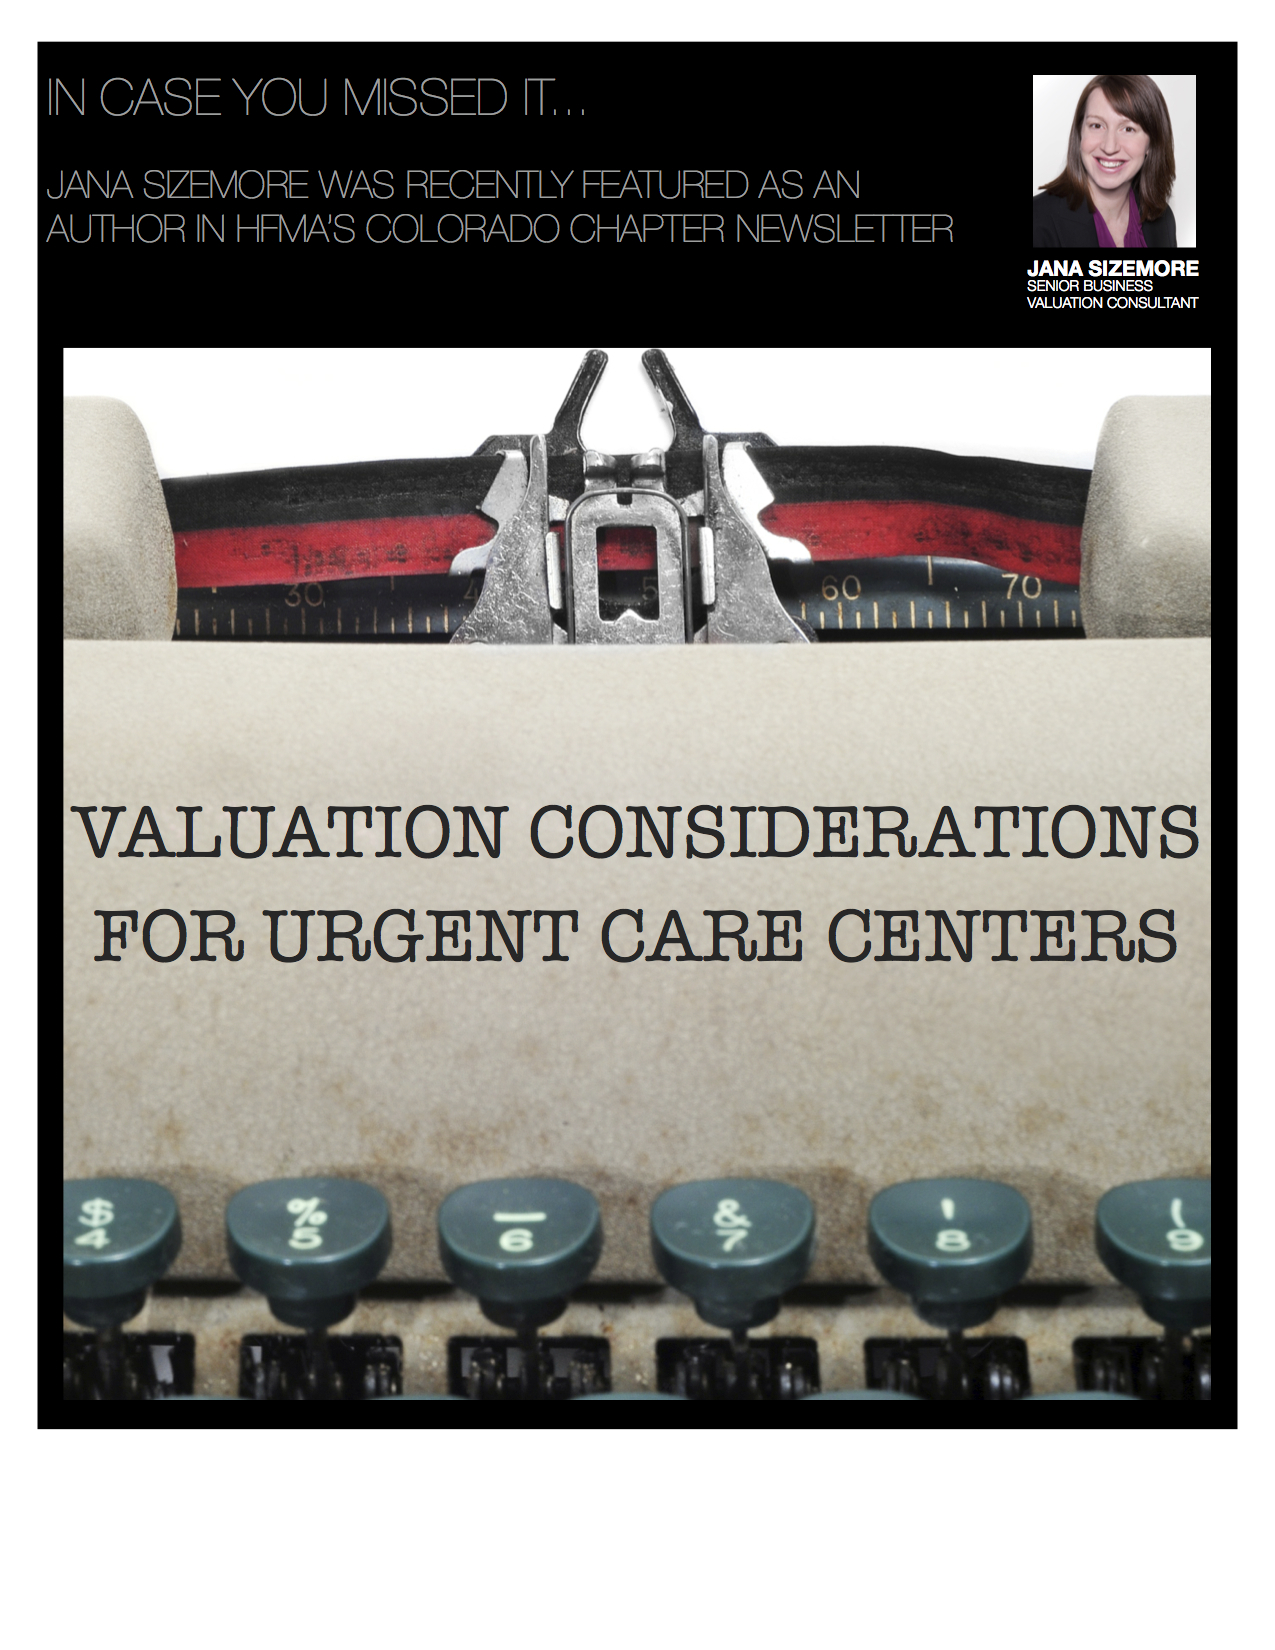 VALUATION CONSIDERATIONS FOR URGENT CARE CENTERS